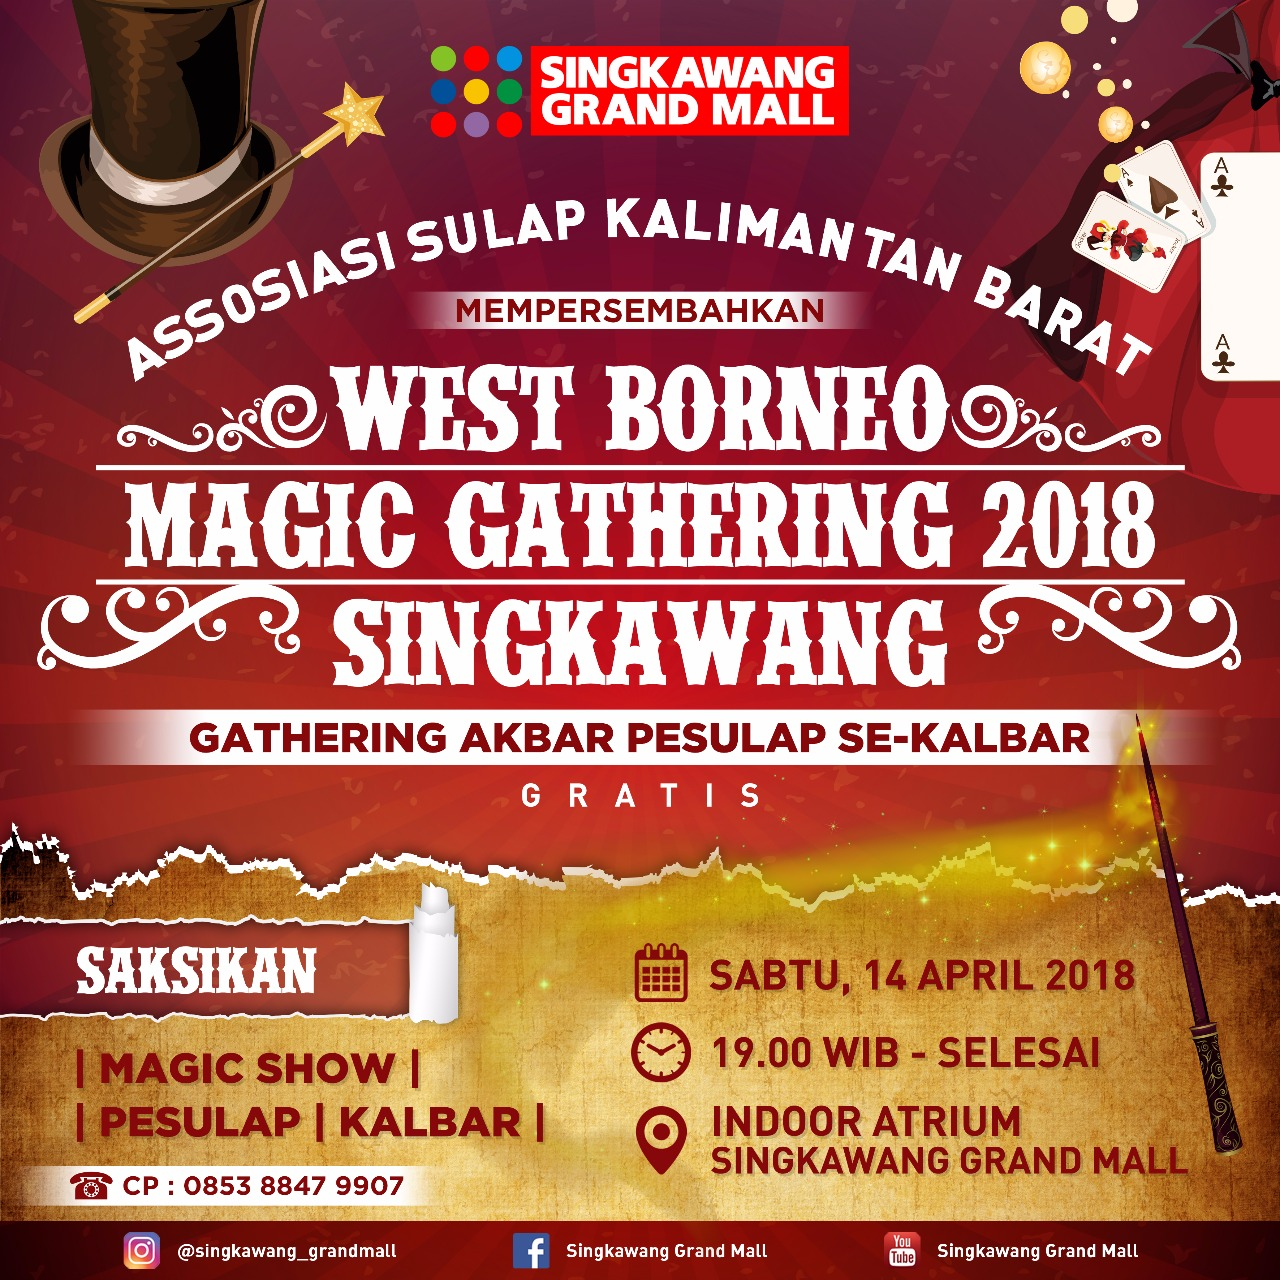 Magic Ghatering 2018